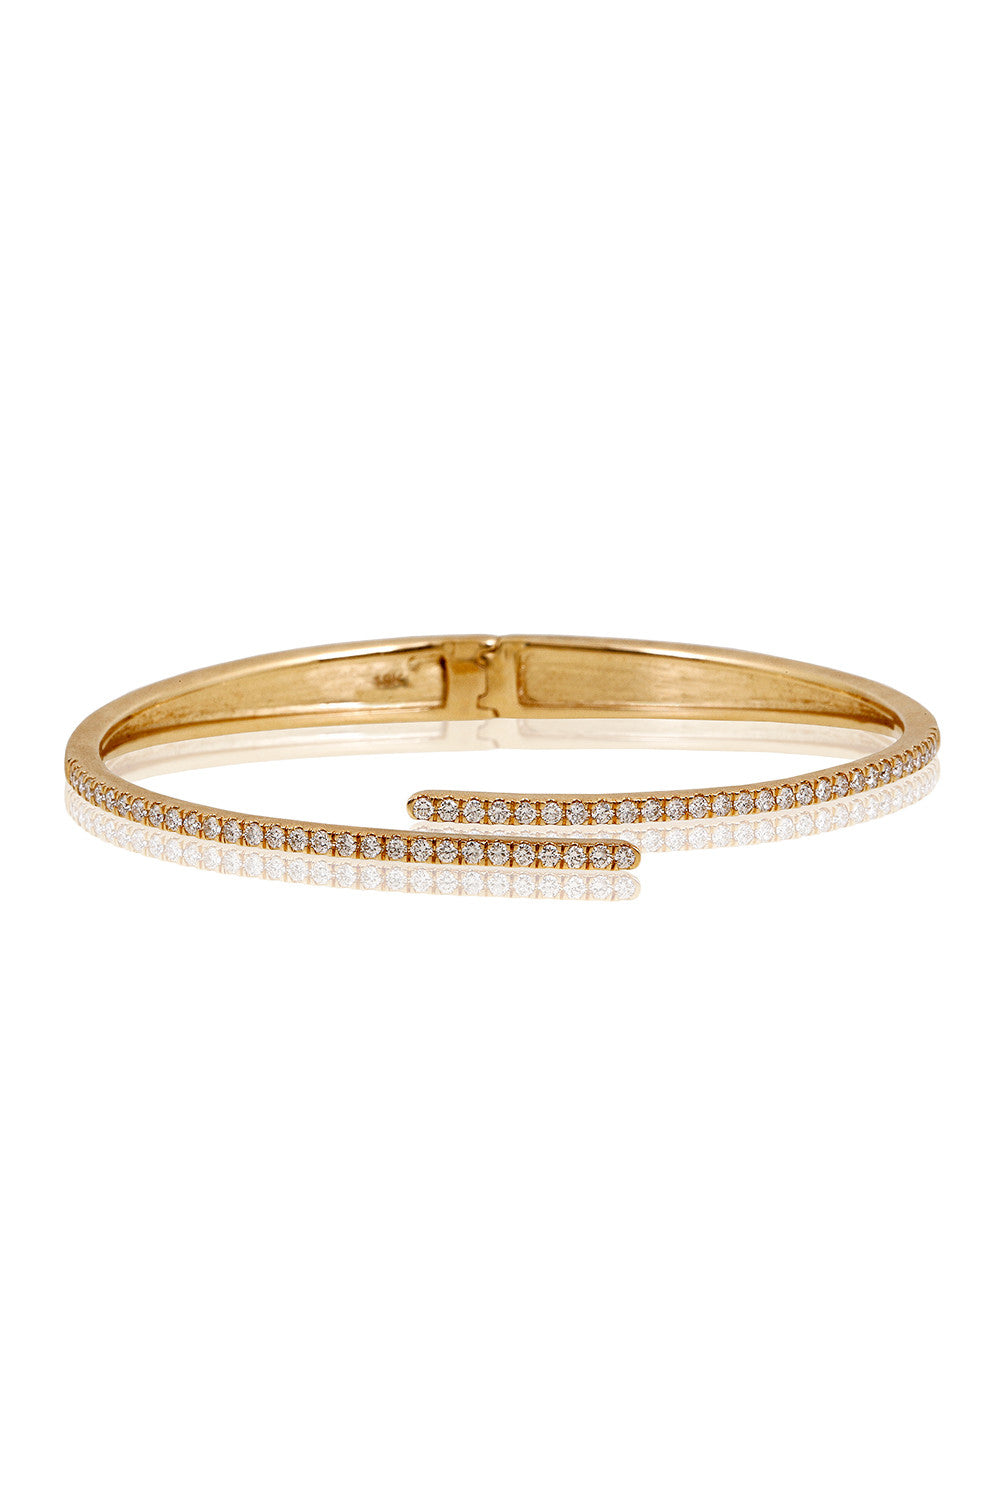 HARMONIC Hinge Bangle in Yellow Gold with White Diamonds